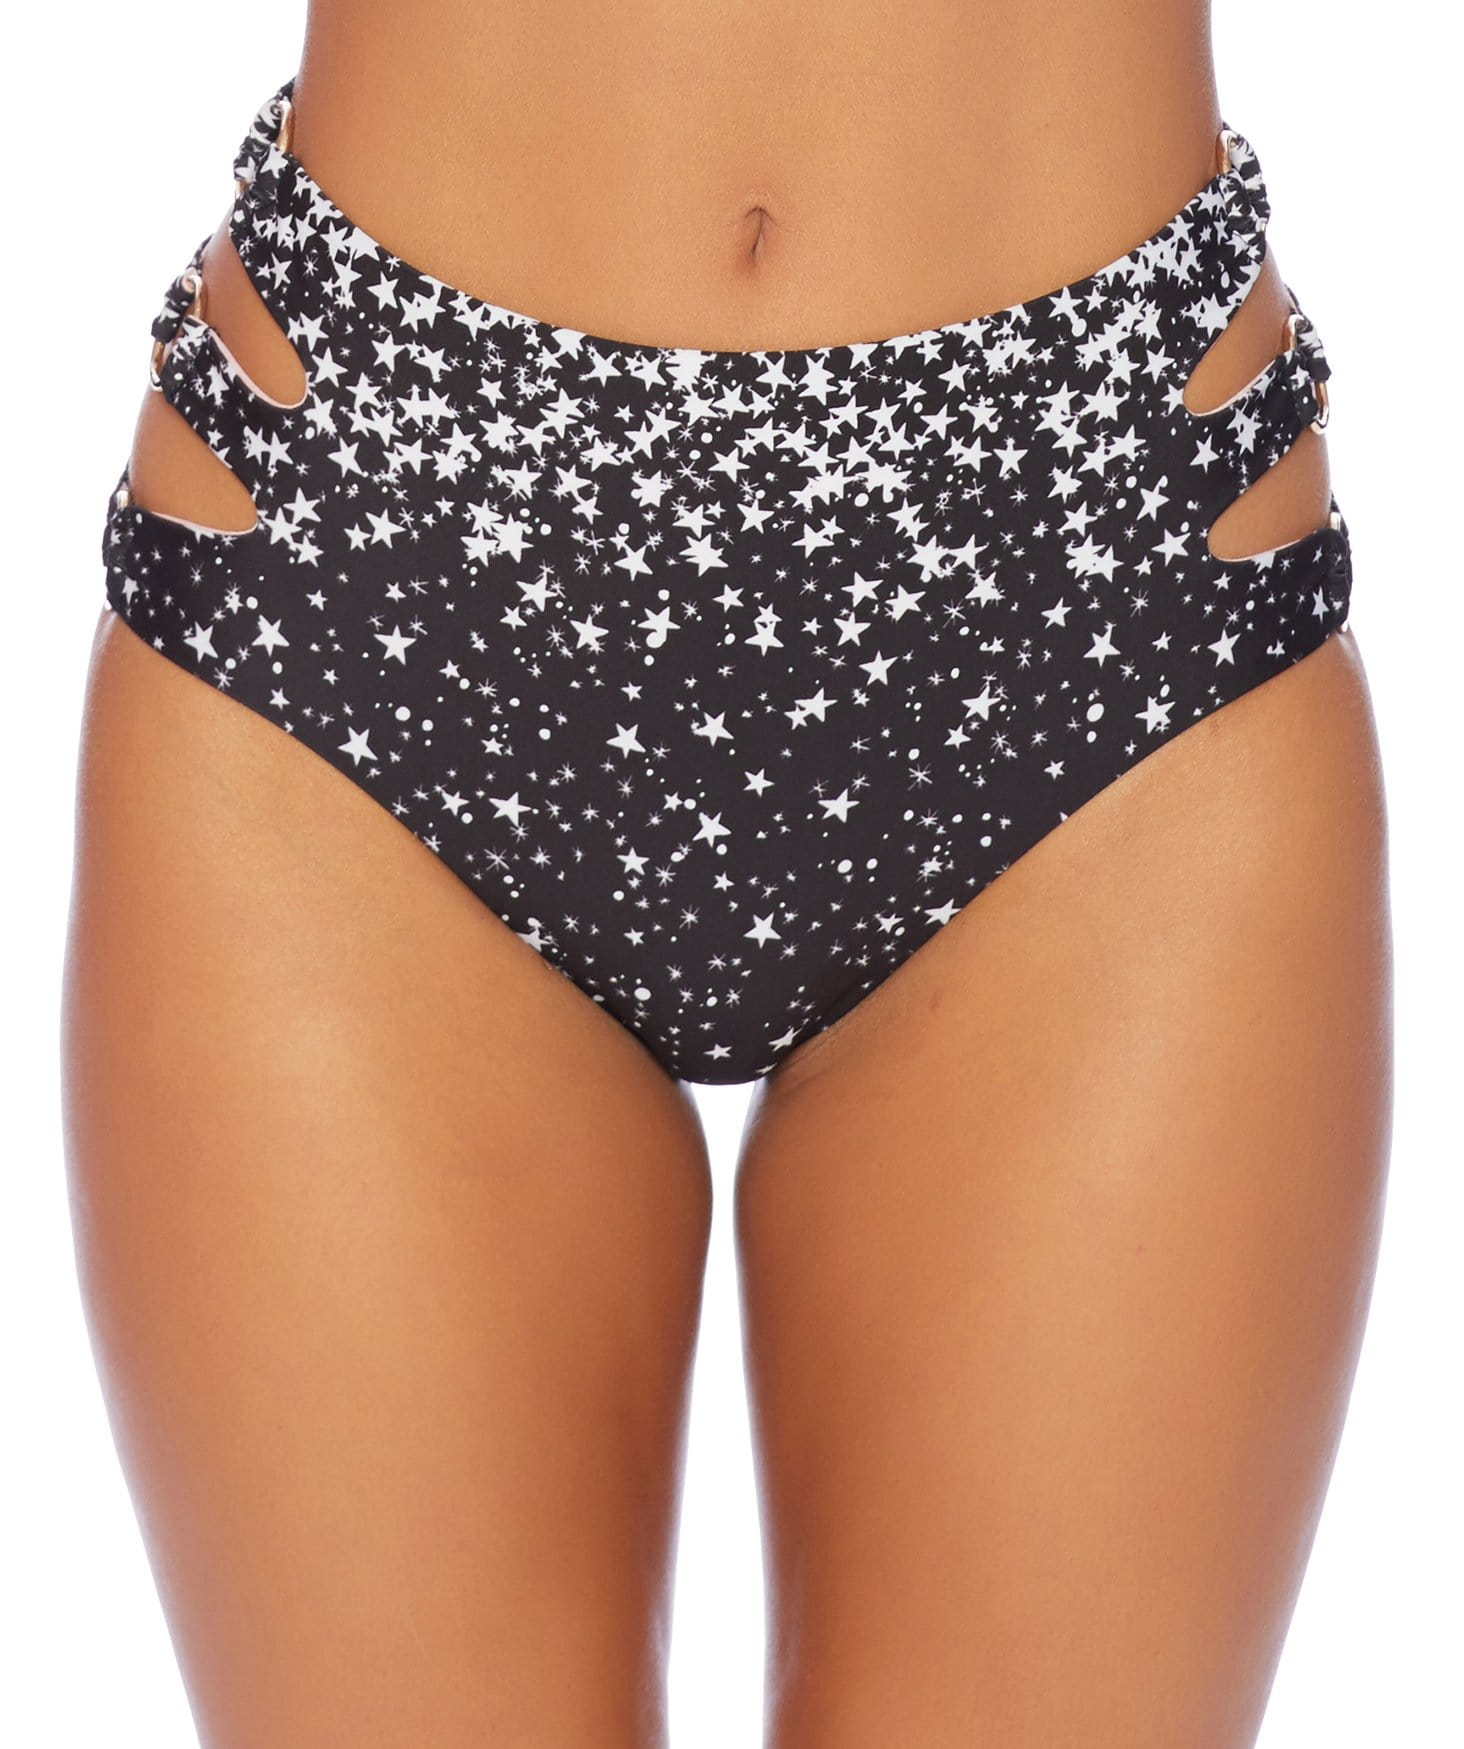 Star Girl High Waist Bikini Bottom